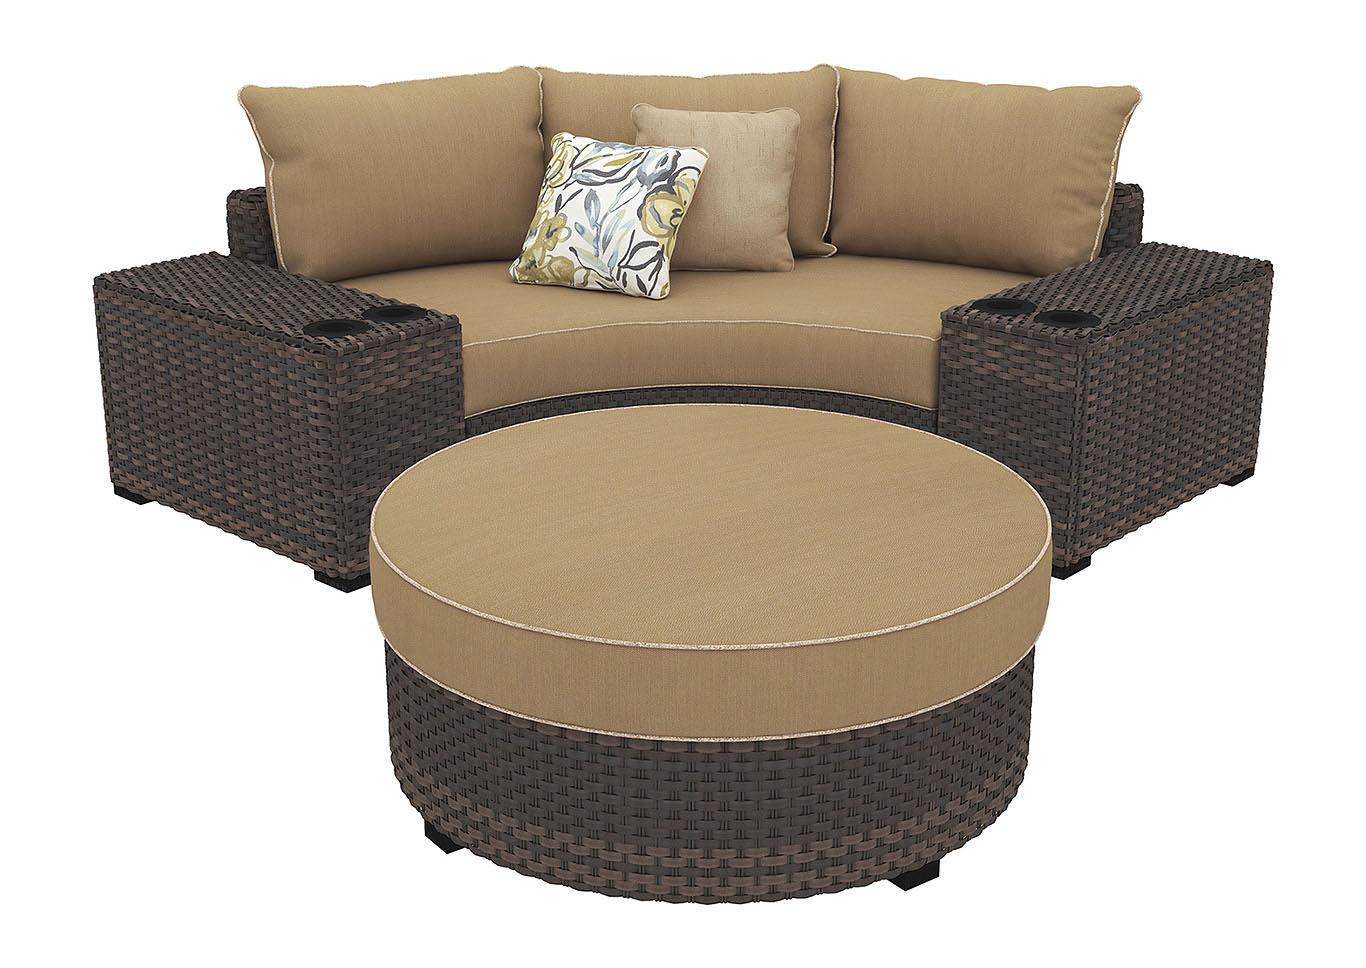 Spring Ridge Beige/Brown Curved Corner Chair w/Console & Ottoman,Outdoor By Ashley